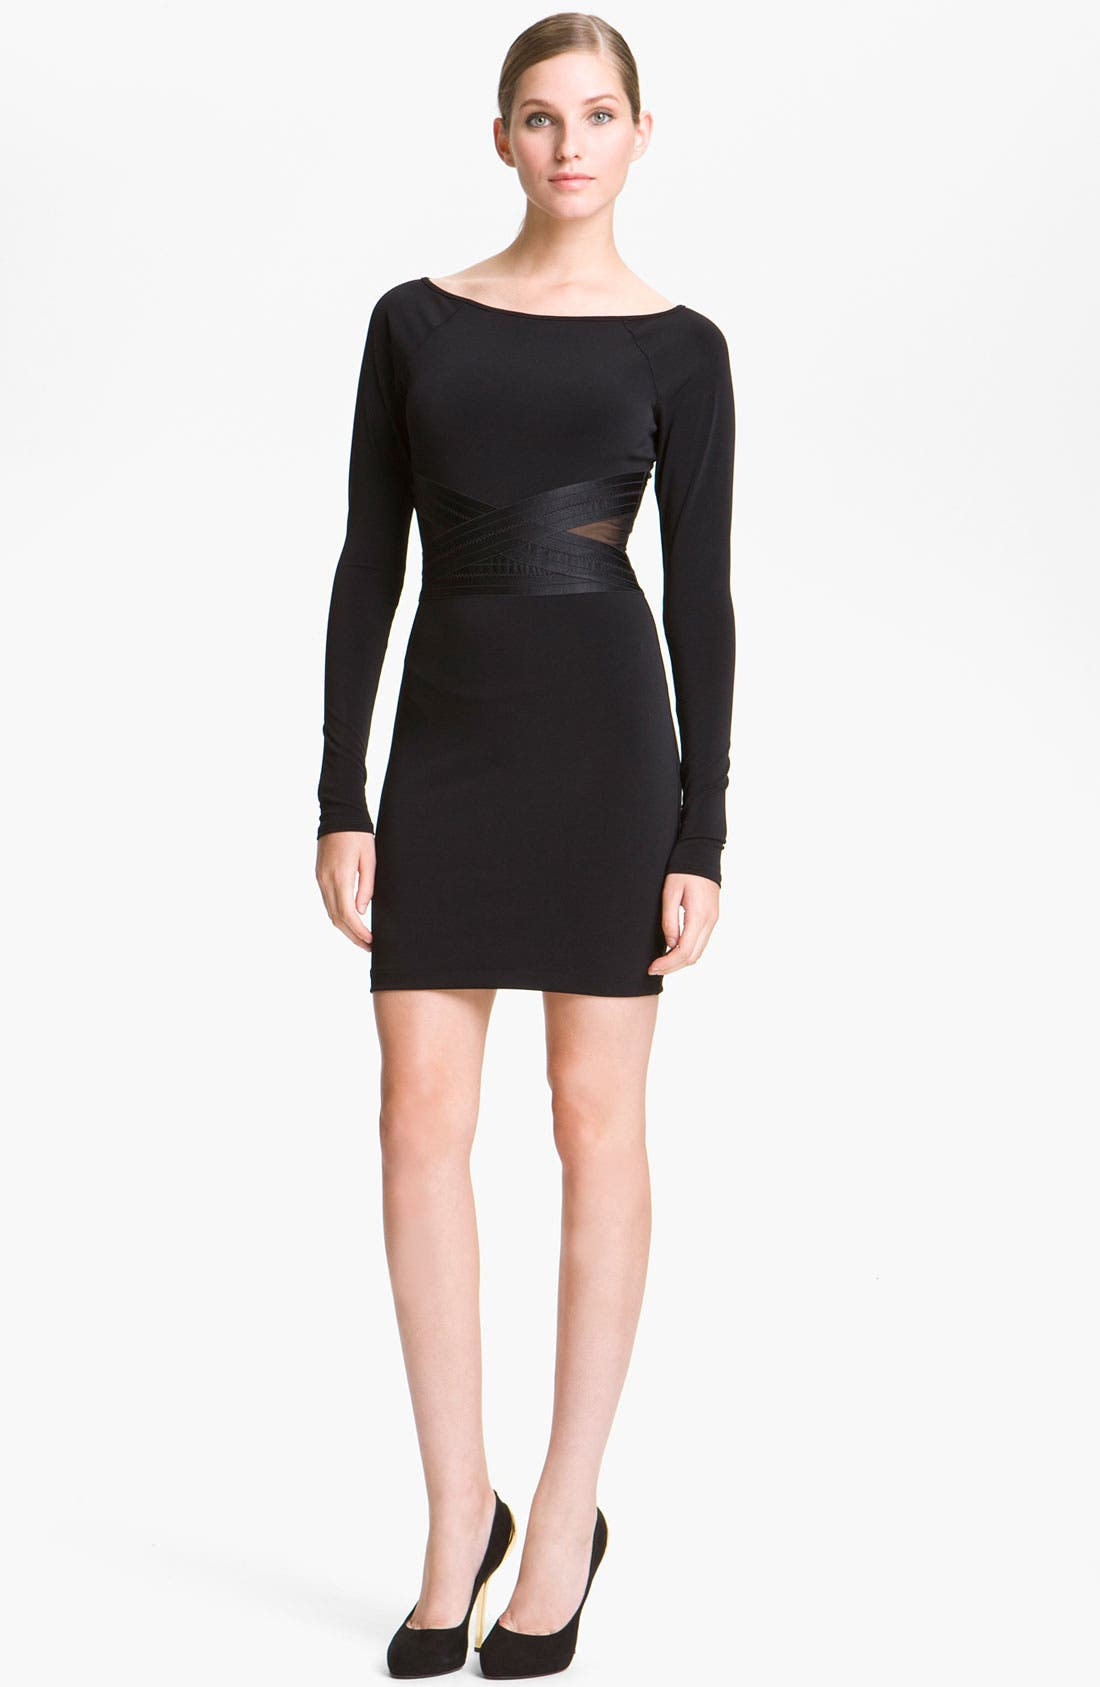 Alternate Image 1 Selected - Elizabeth and James 'Alexa' Stretch Knit Dress